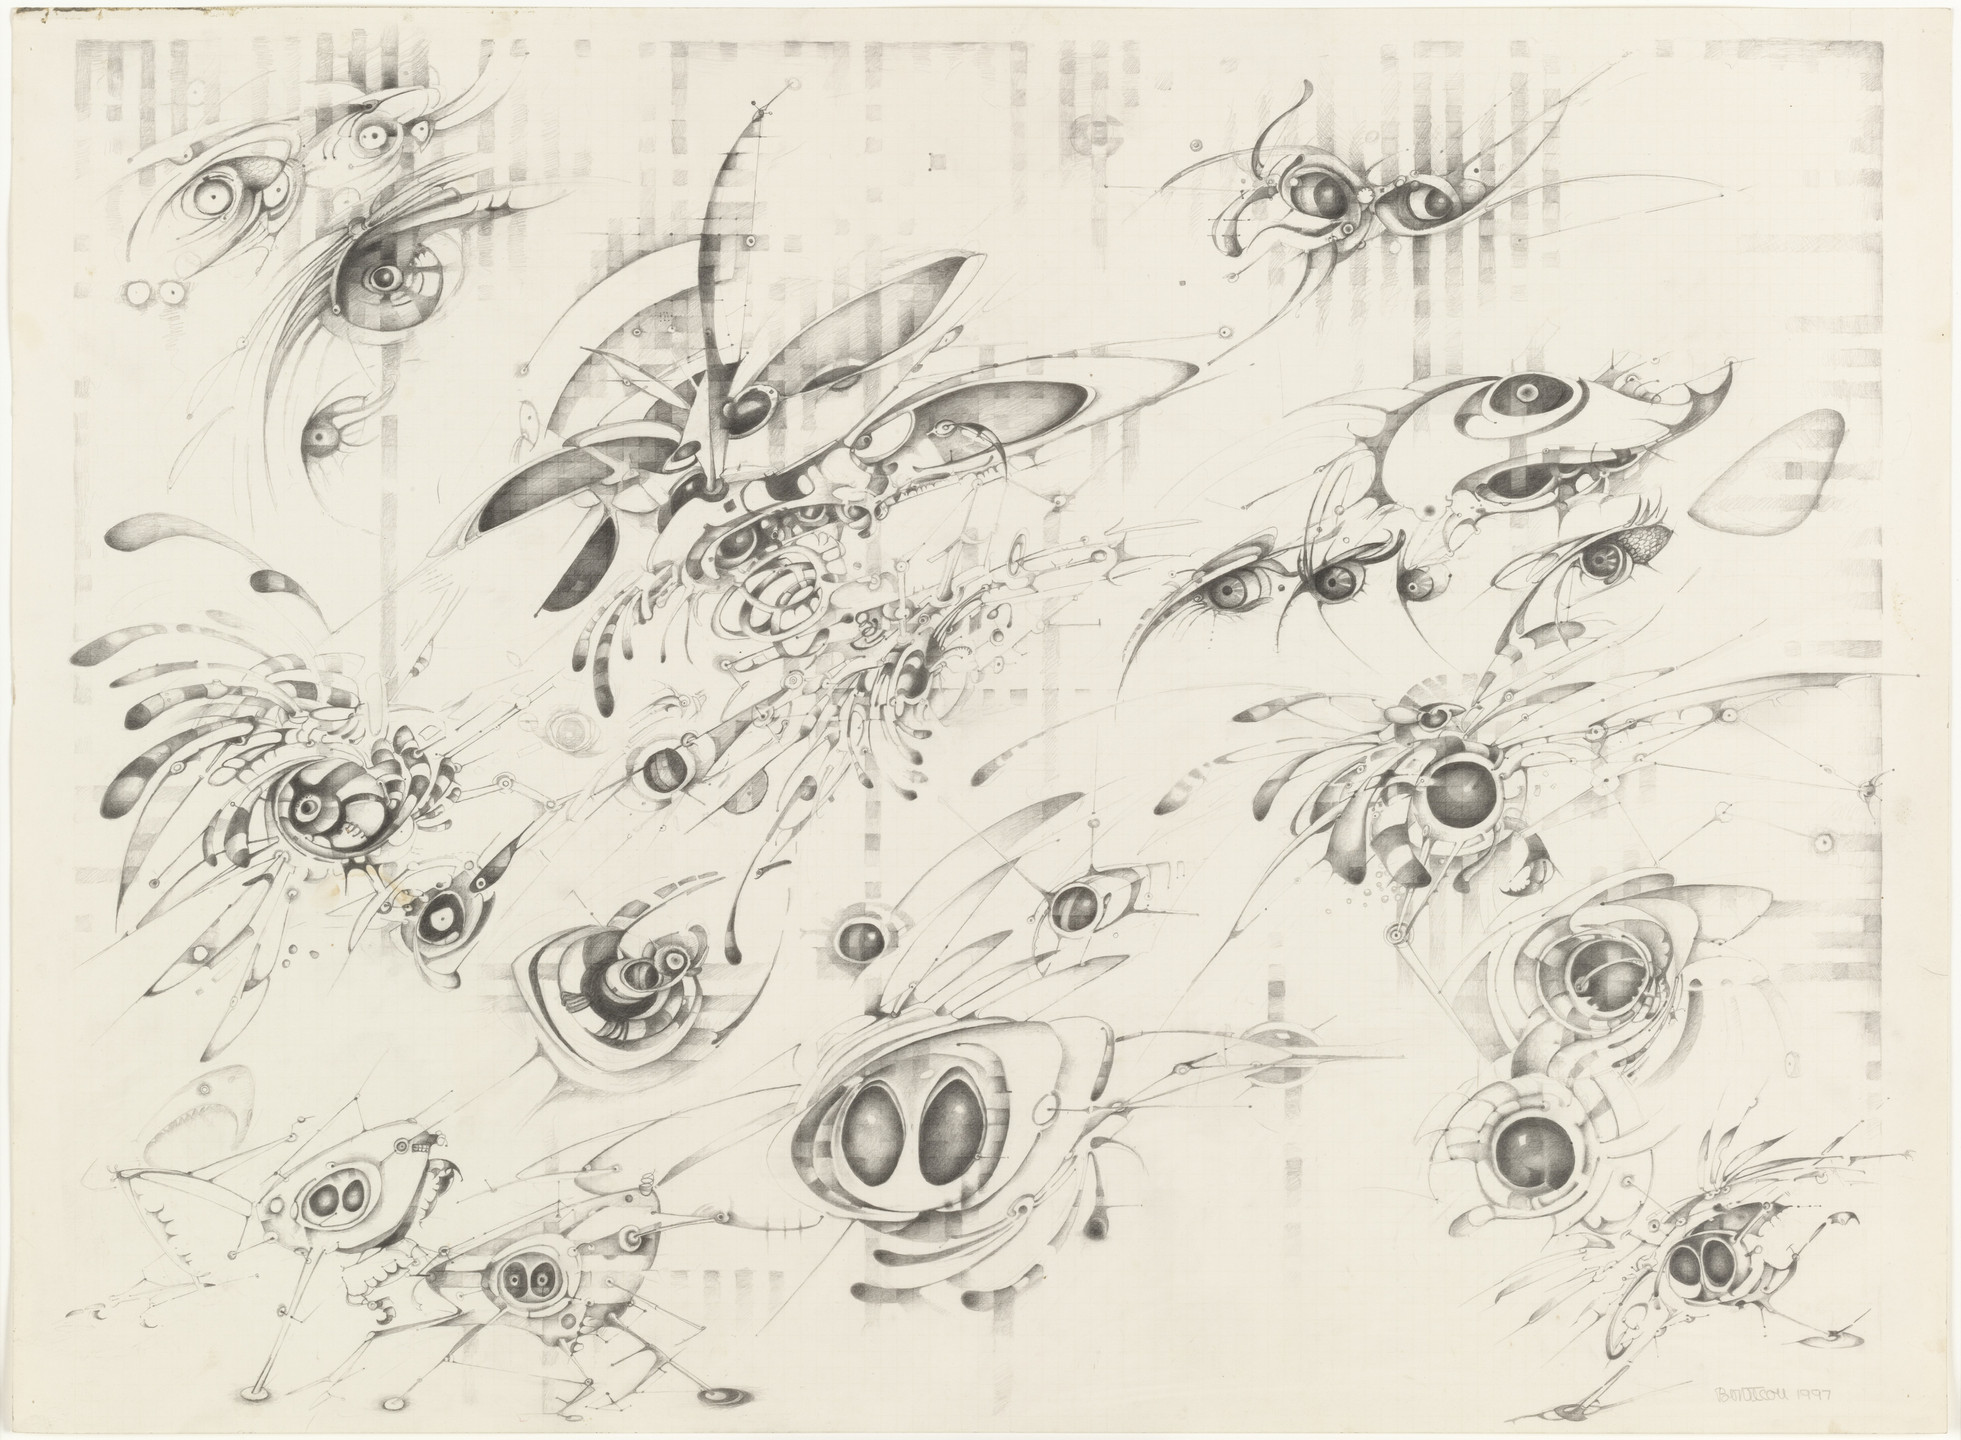 Lee Bontecou. Untitled. 1997